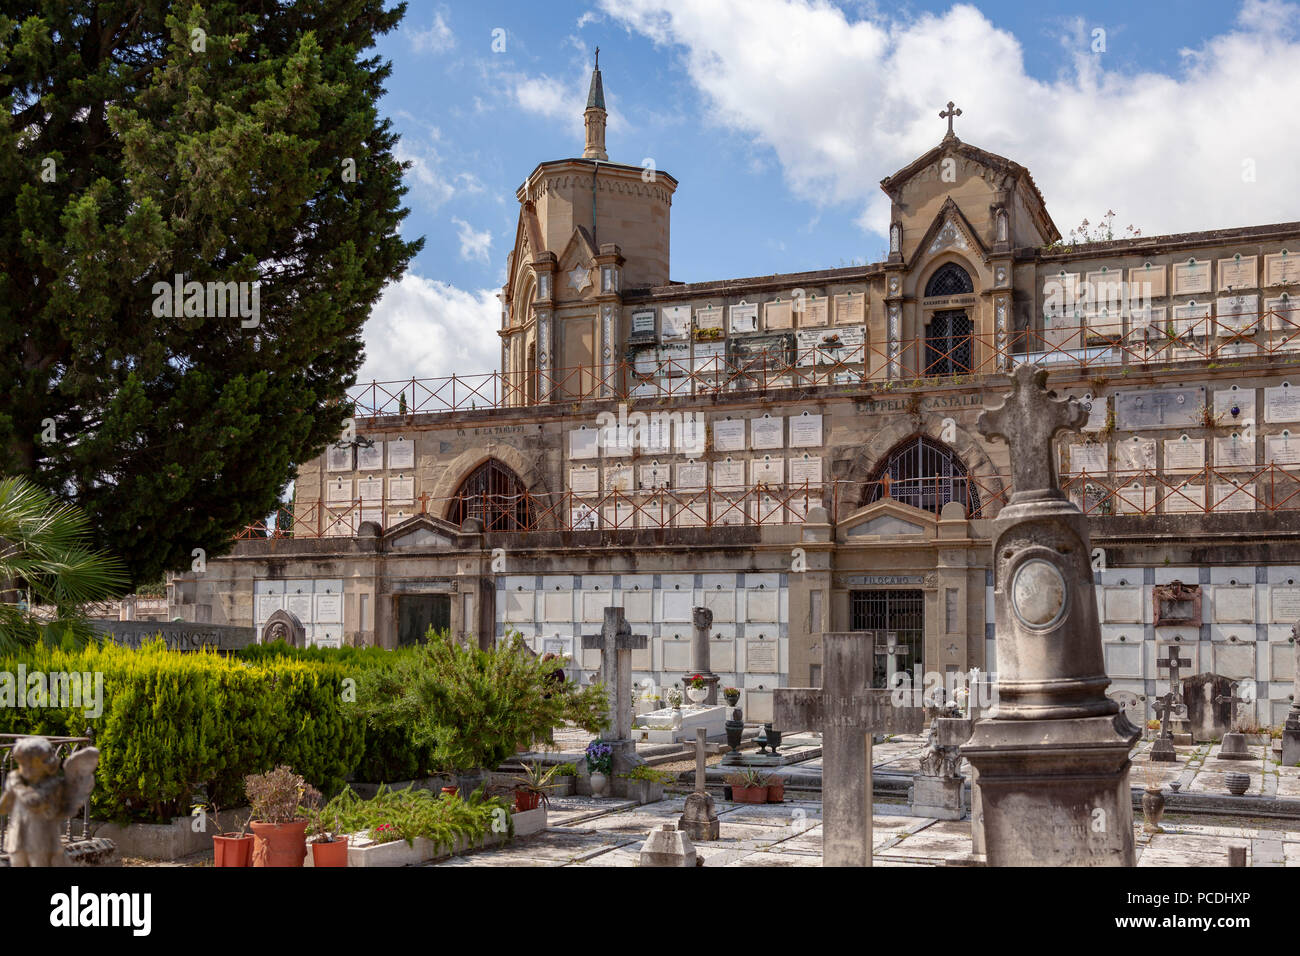 The lovely cemetery which surrounds the church of San Miniato al Monte, at Florence (Tuscany - Italy). - Stock Image